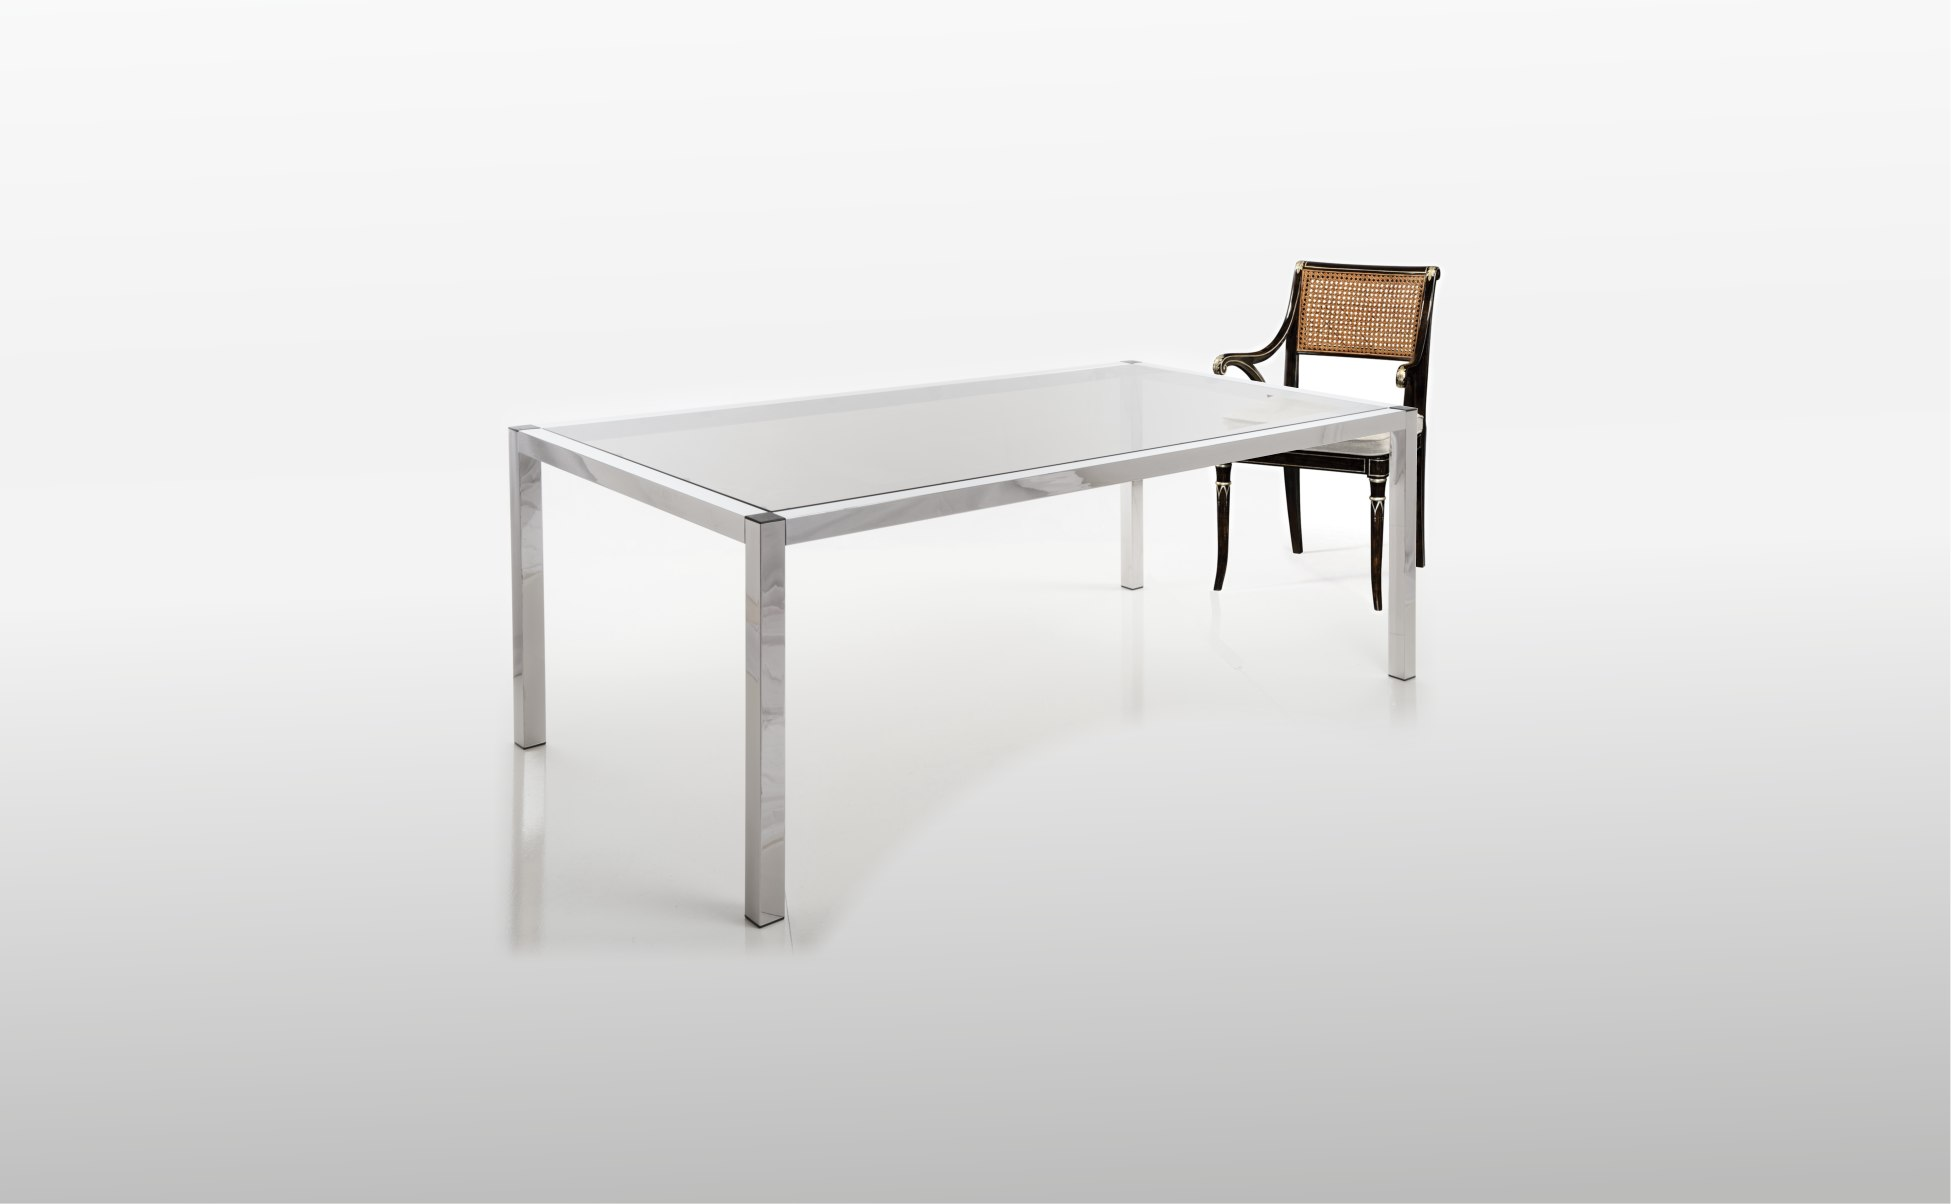 Stainless Steel Mirror finished dining table